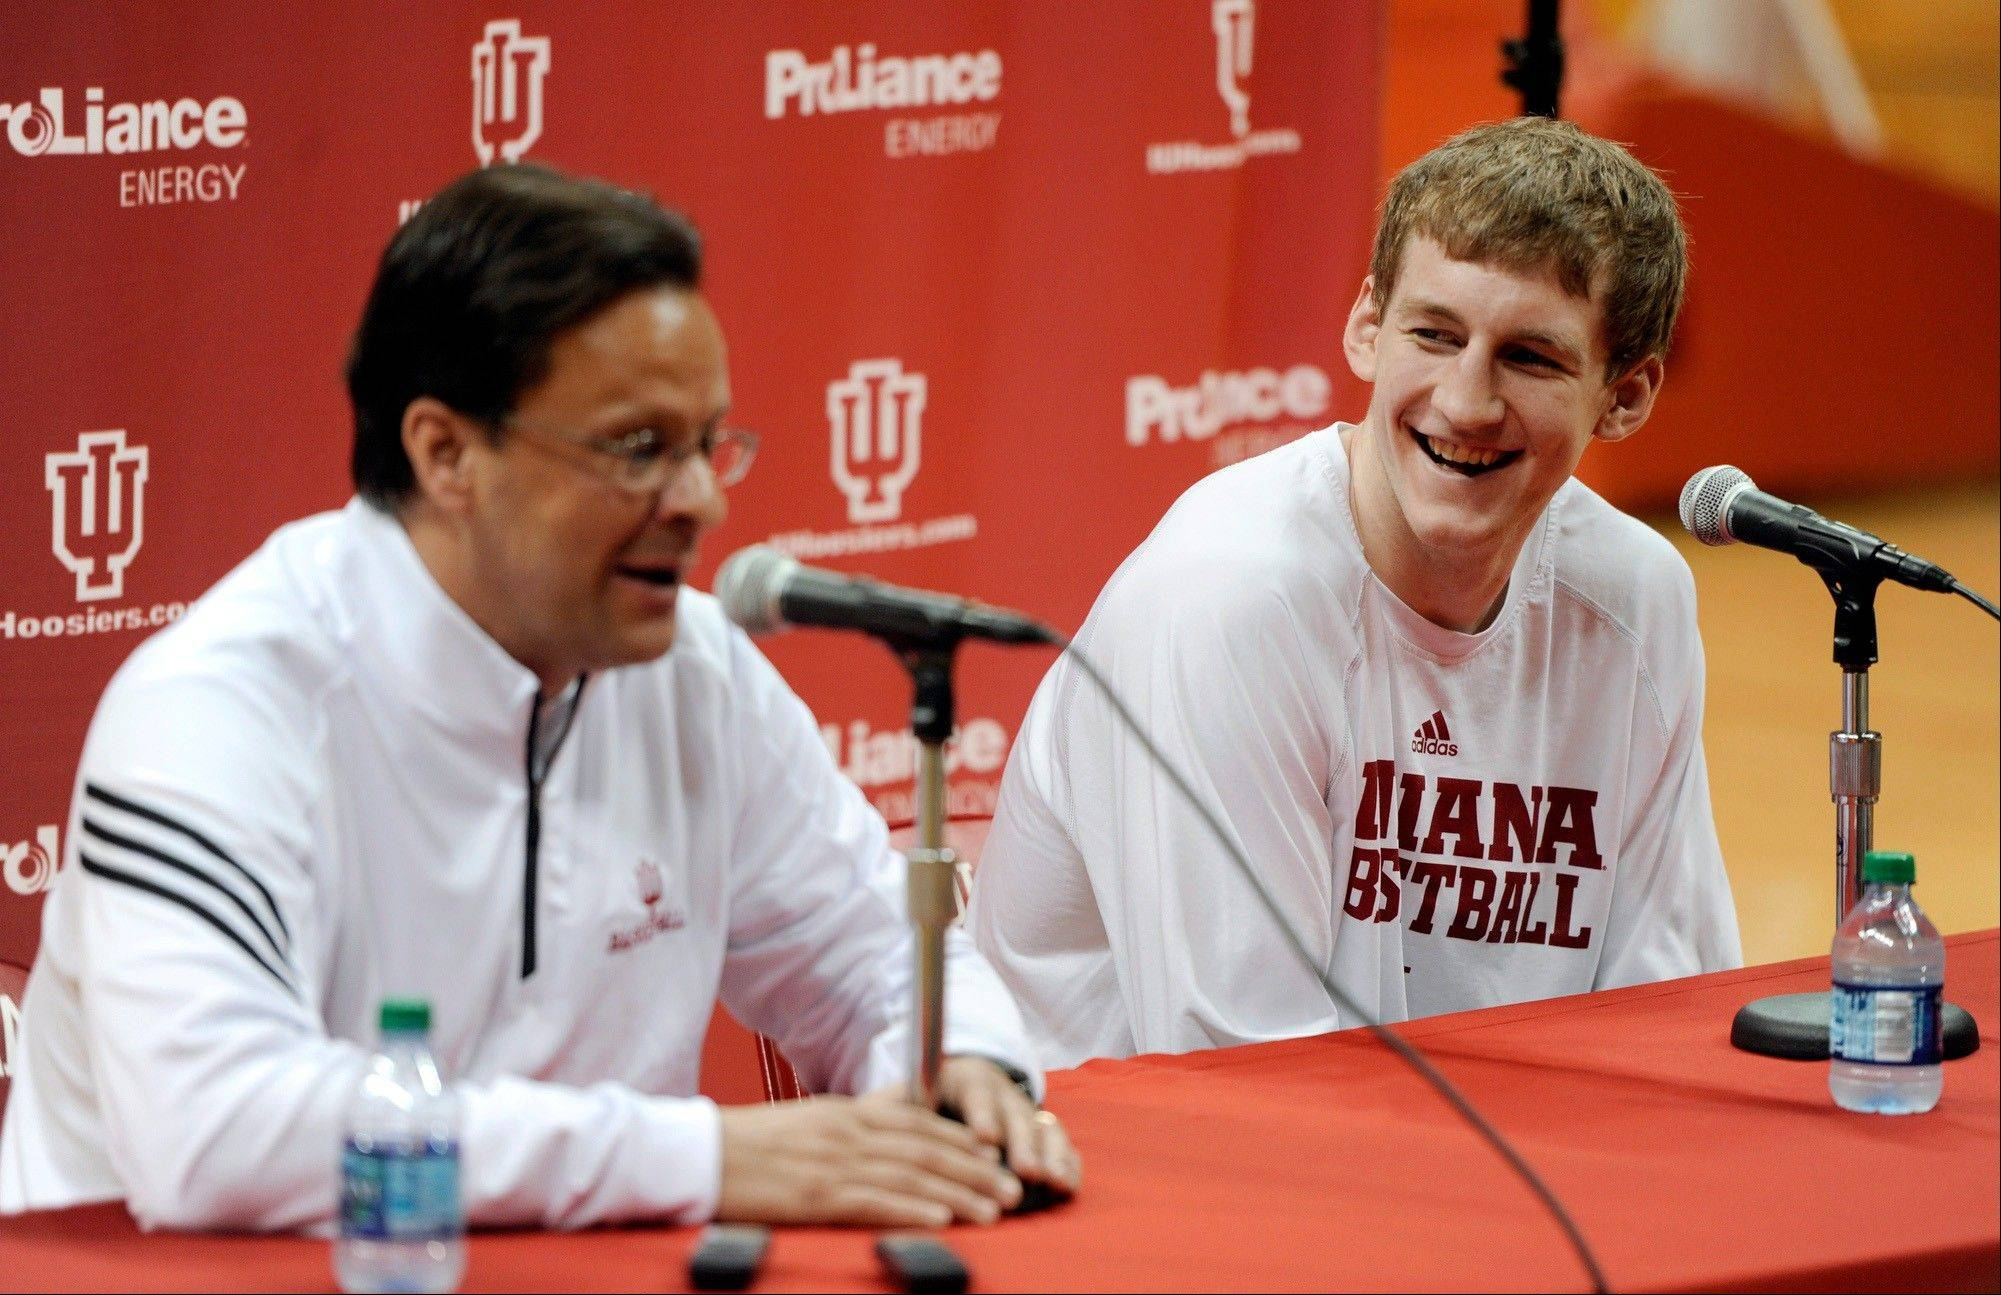 Indiana men's basketball coach Tom Crean speaks as forward Cody Zeller listens during a news conference where Zeller said he will enter the NBA draft, at Assembly Hall in Bloomington, Ind., Wednesday, April 10, 2013.